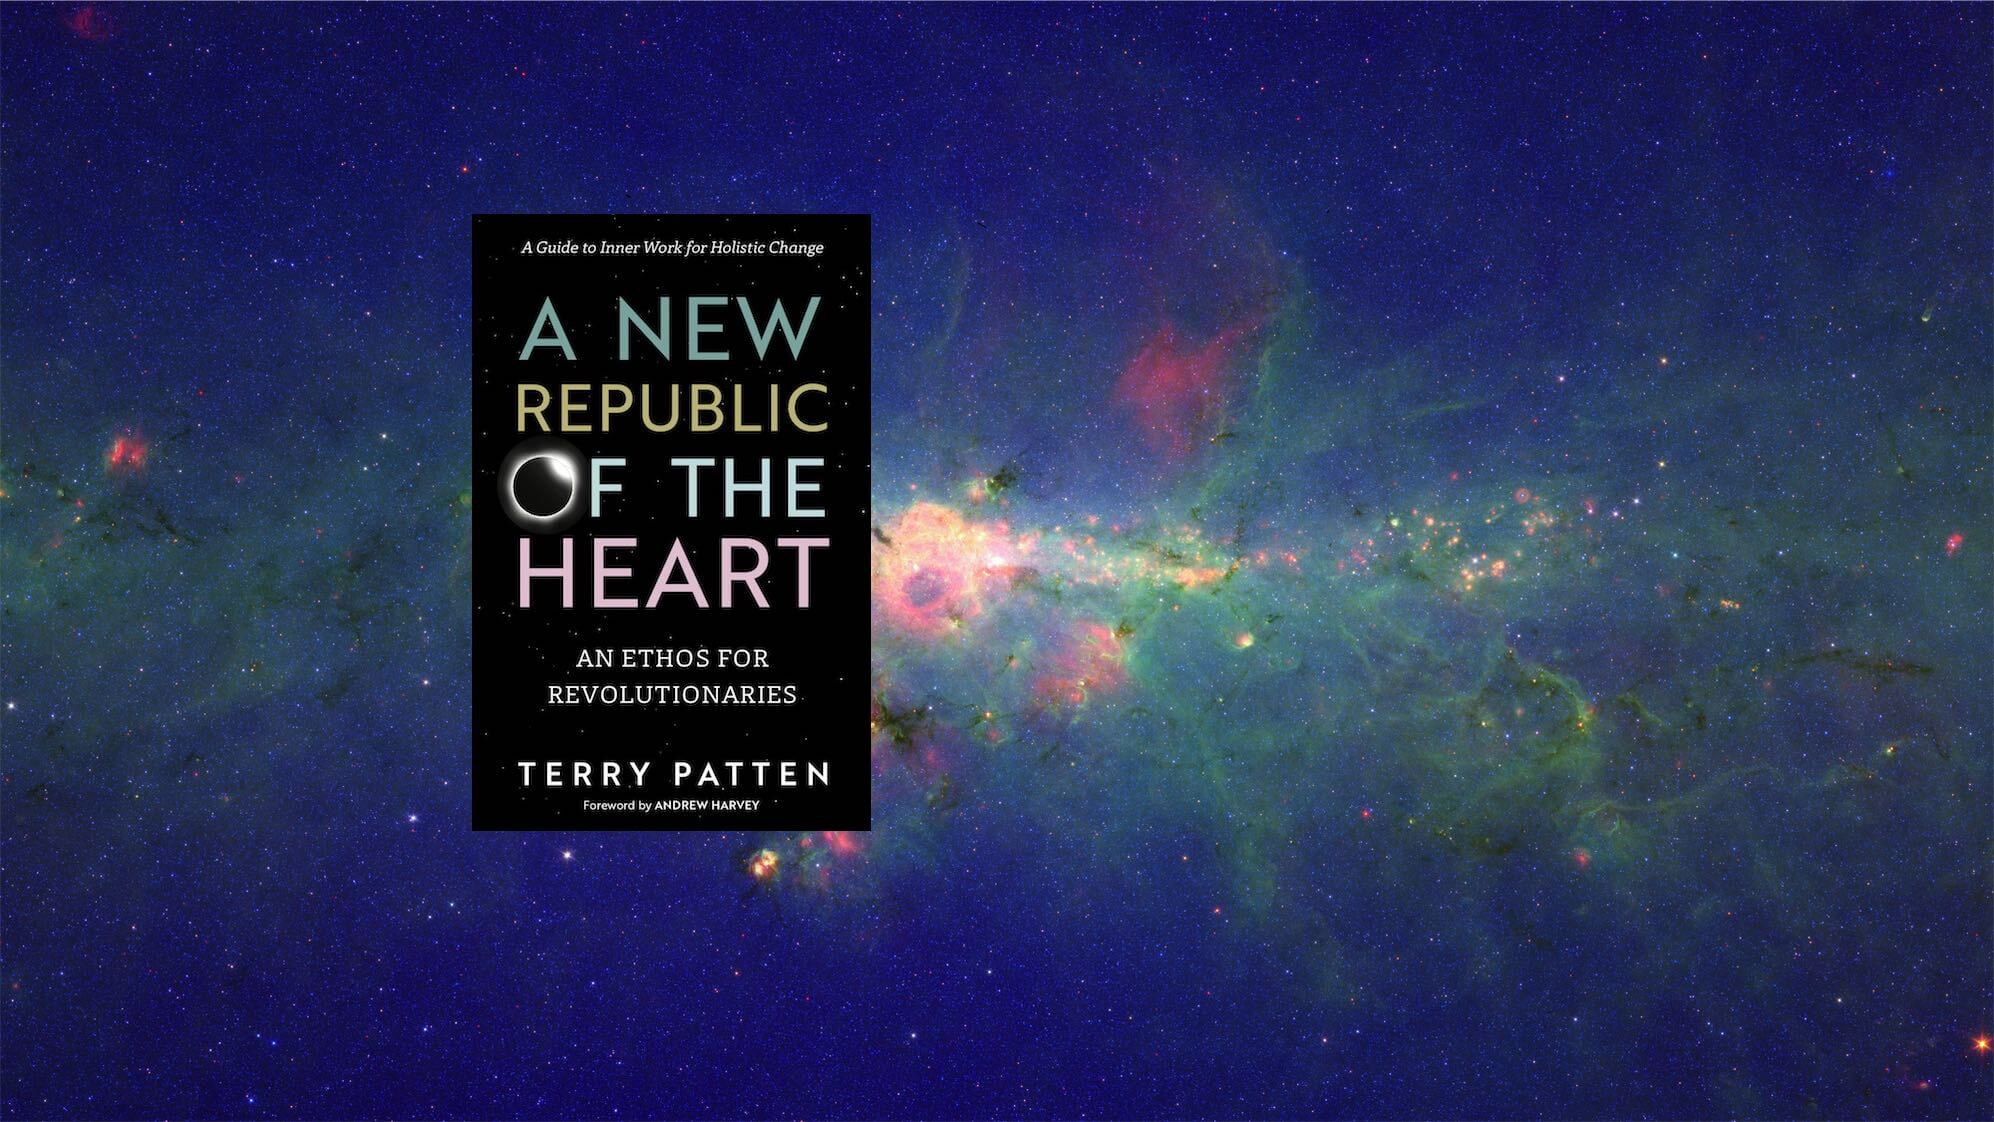 A NEW REPUBLIC OF THE HEART—an Ethos for Revolutionaries